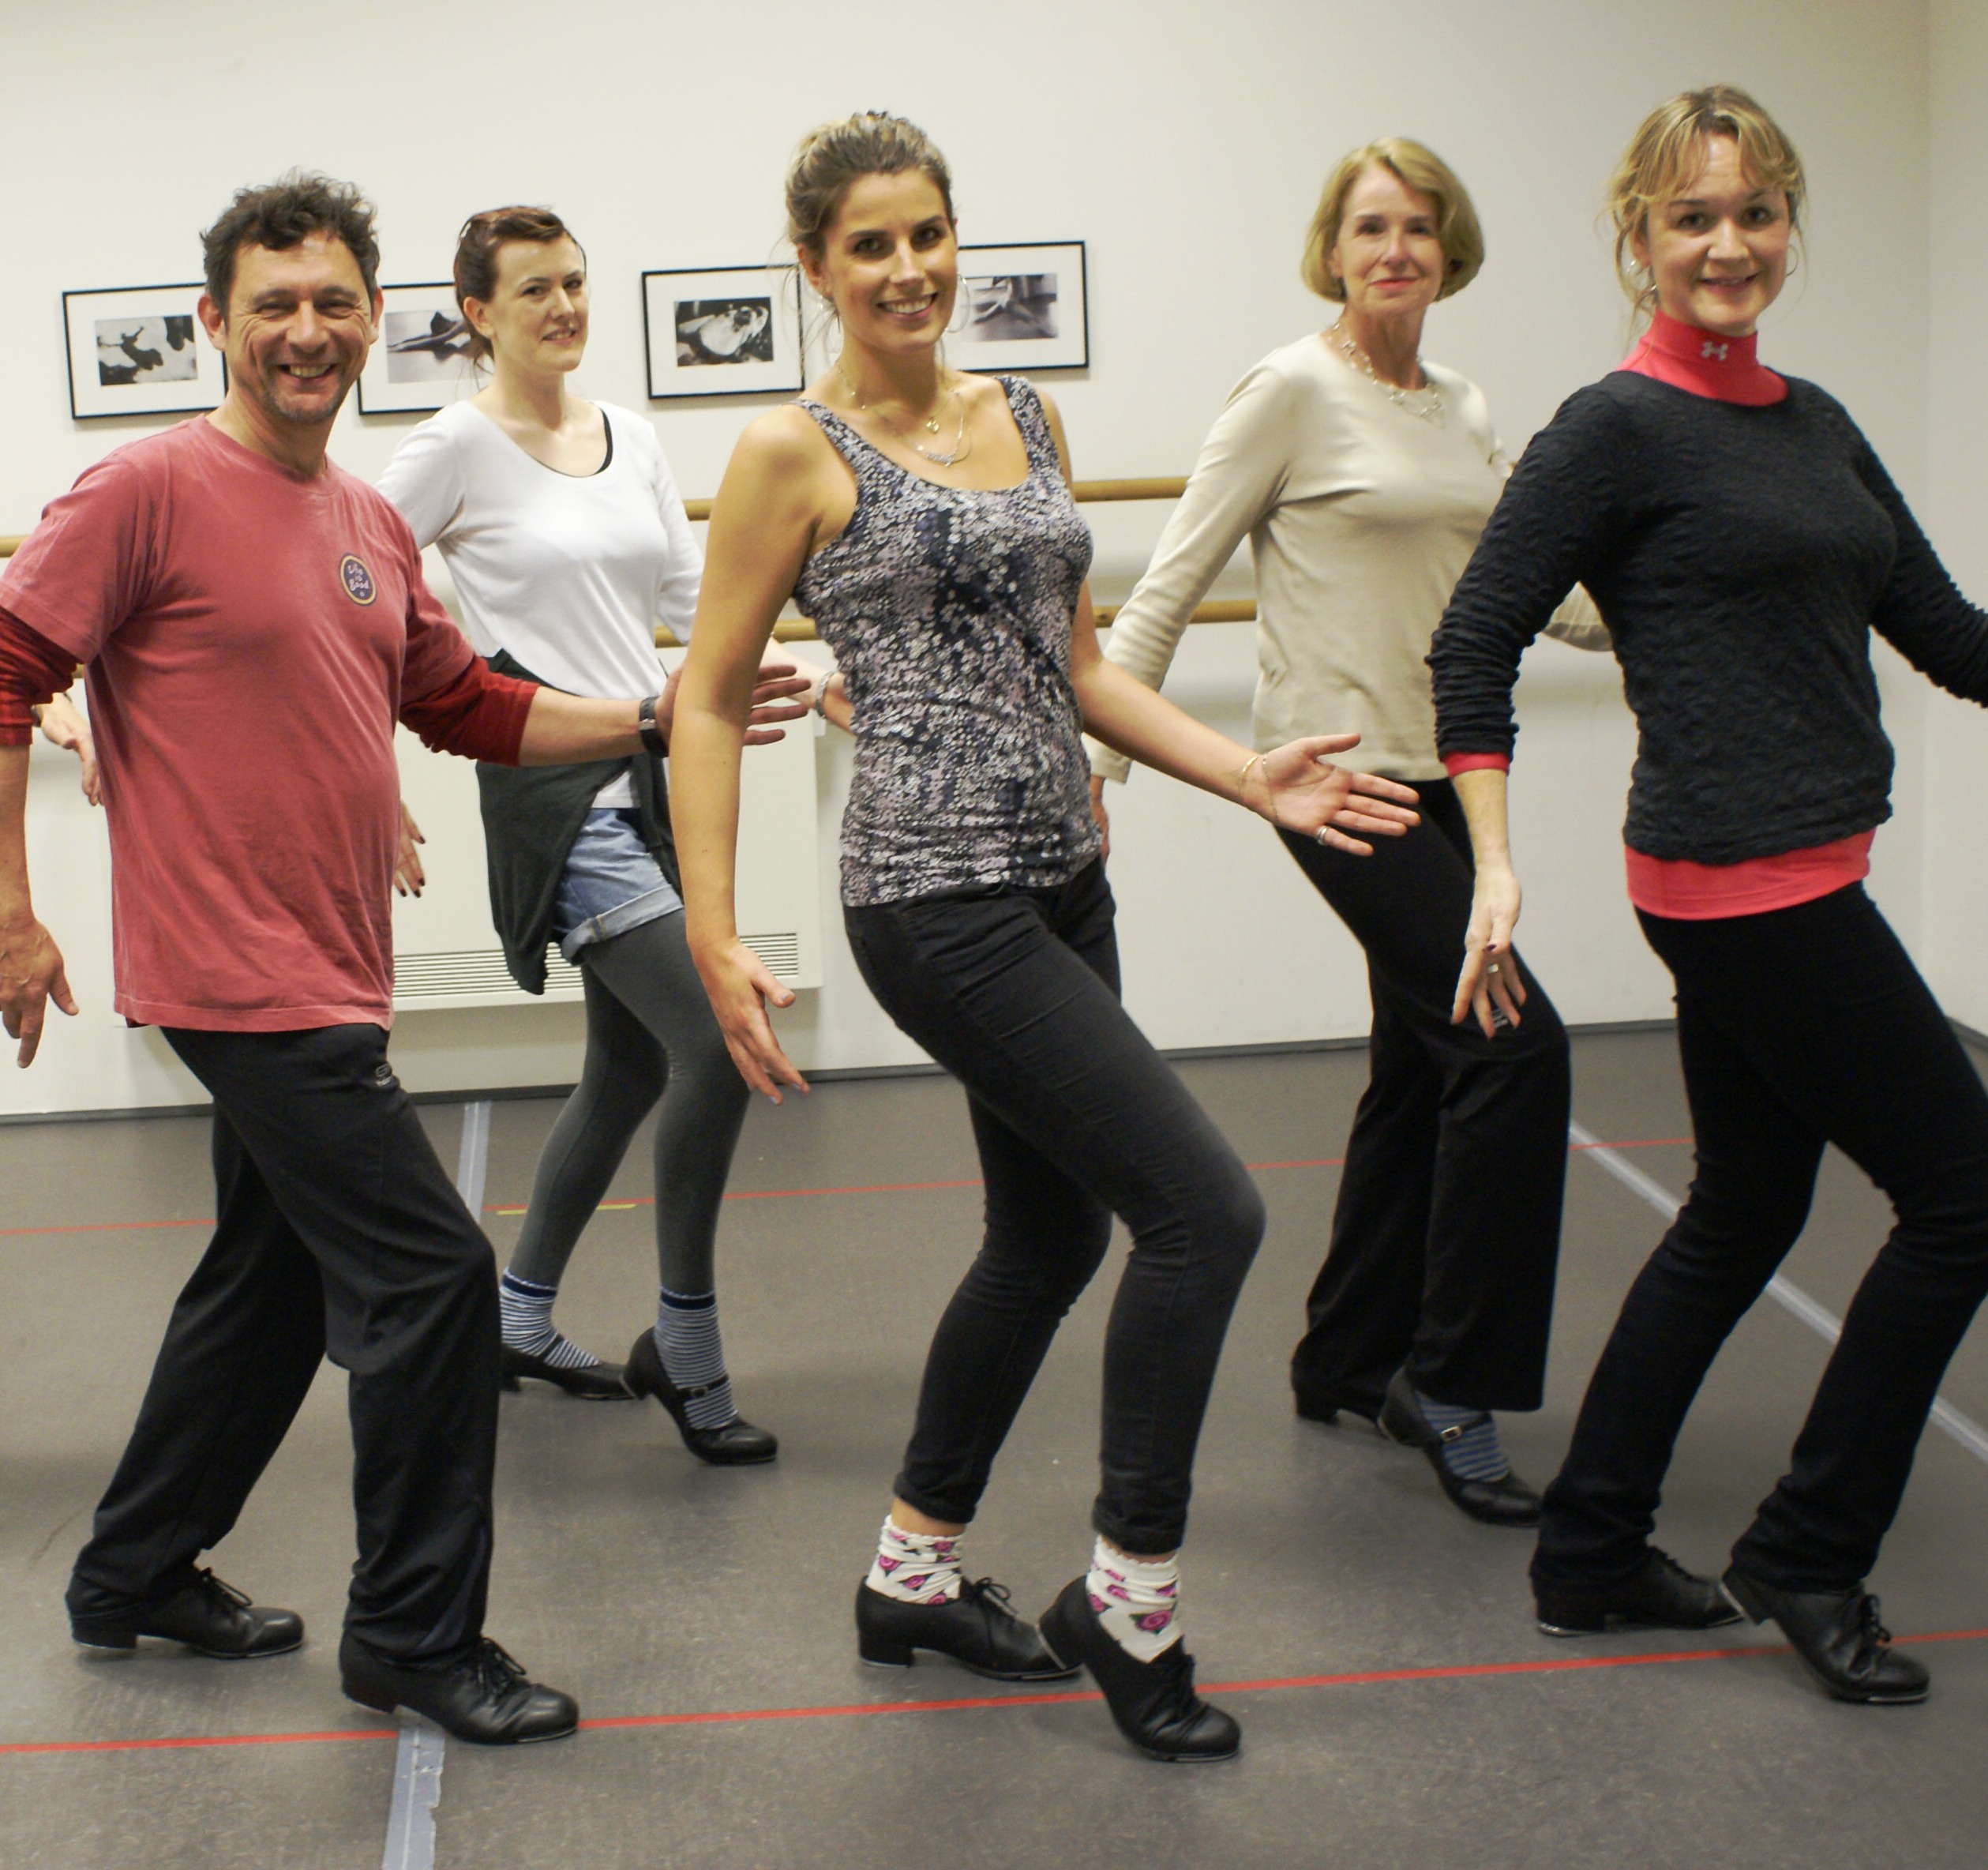 Adult dancing classes